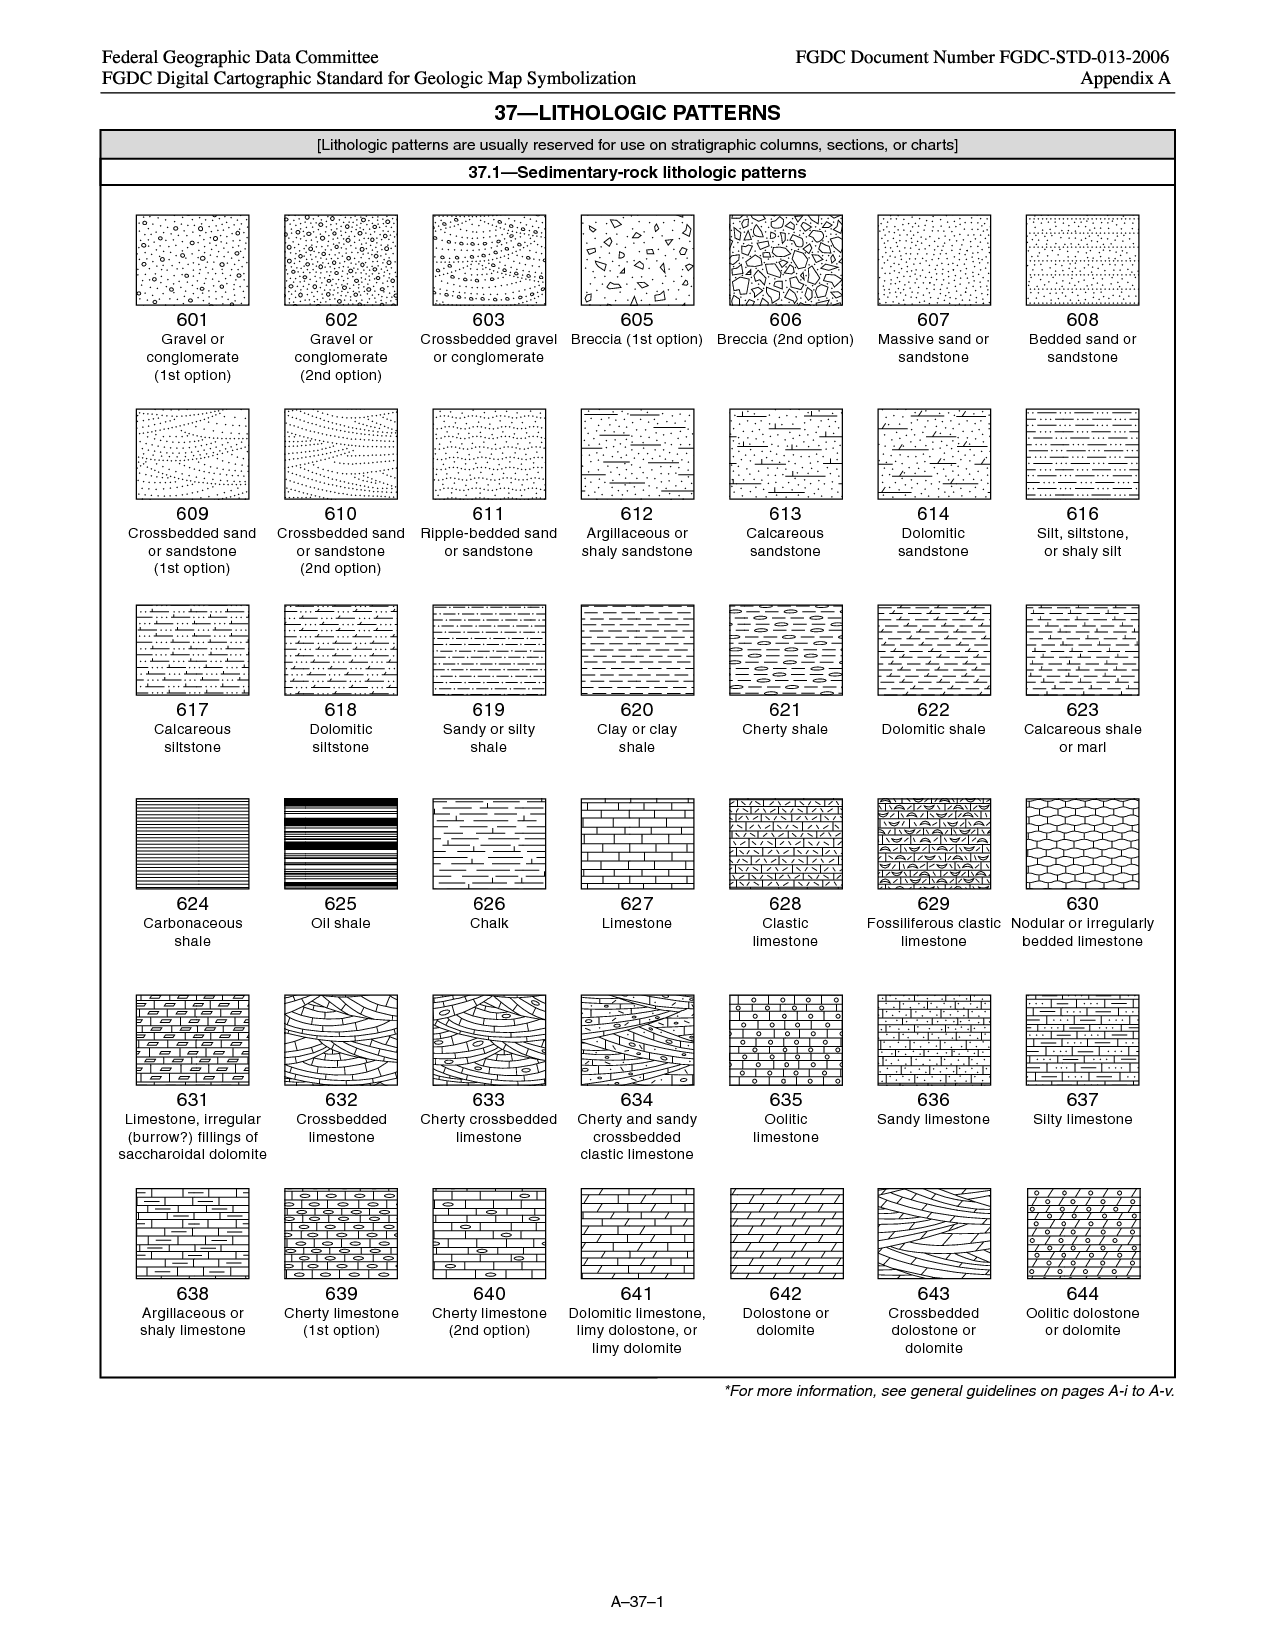 Lithographic Patterns For Sedimetry Rock Federal